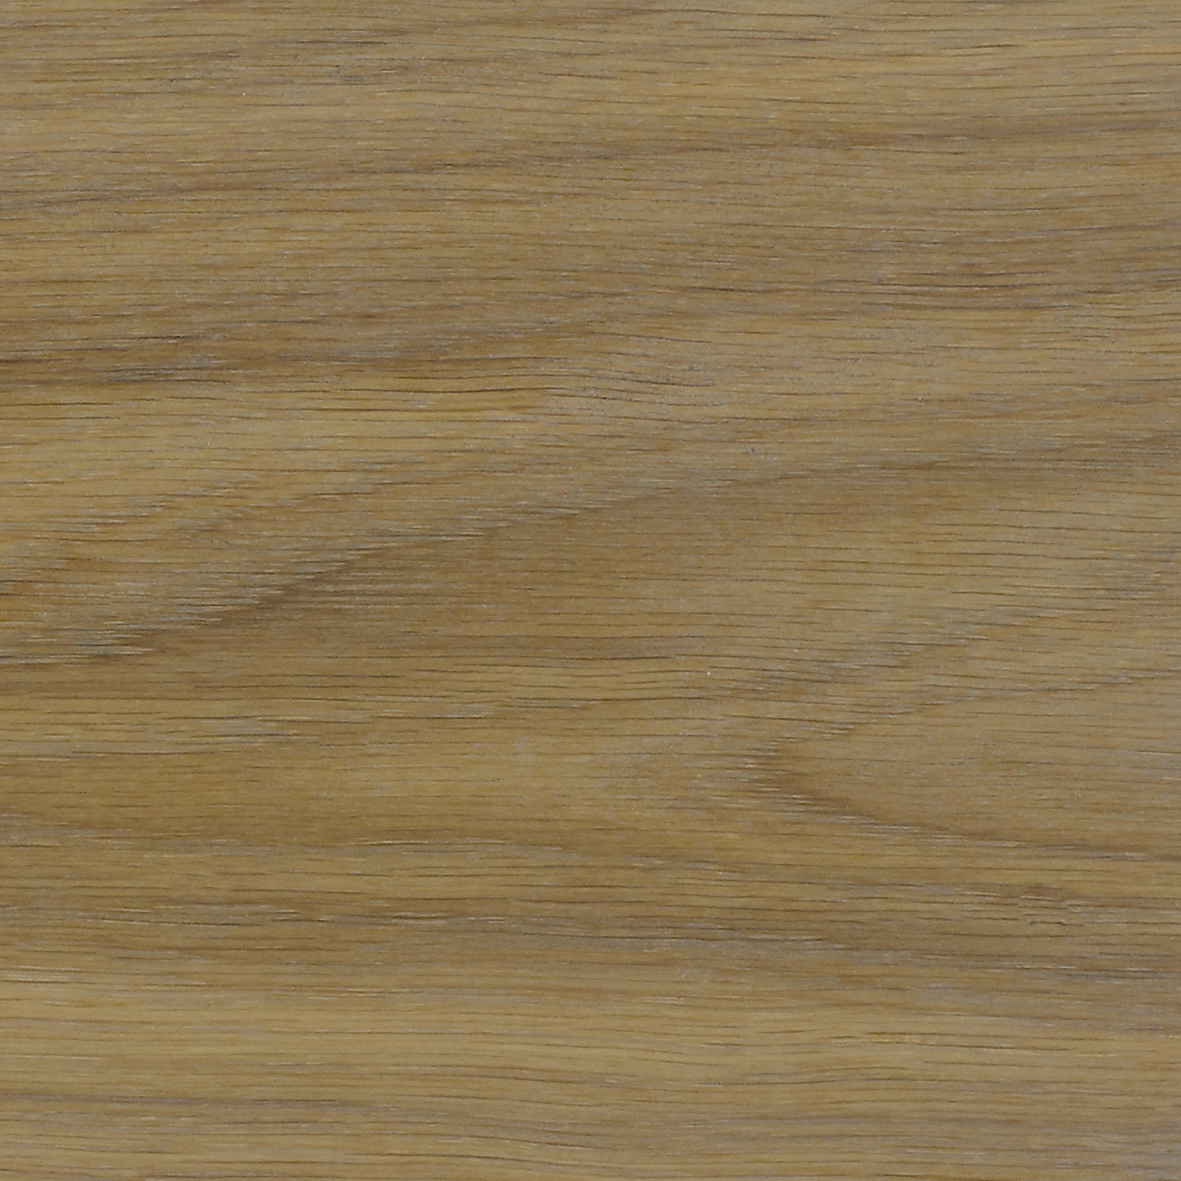 Oyster wood floor finish